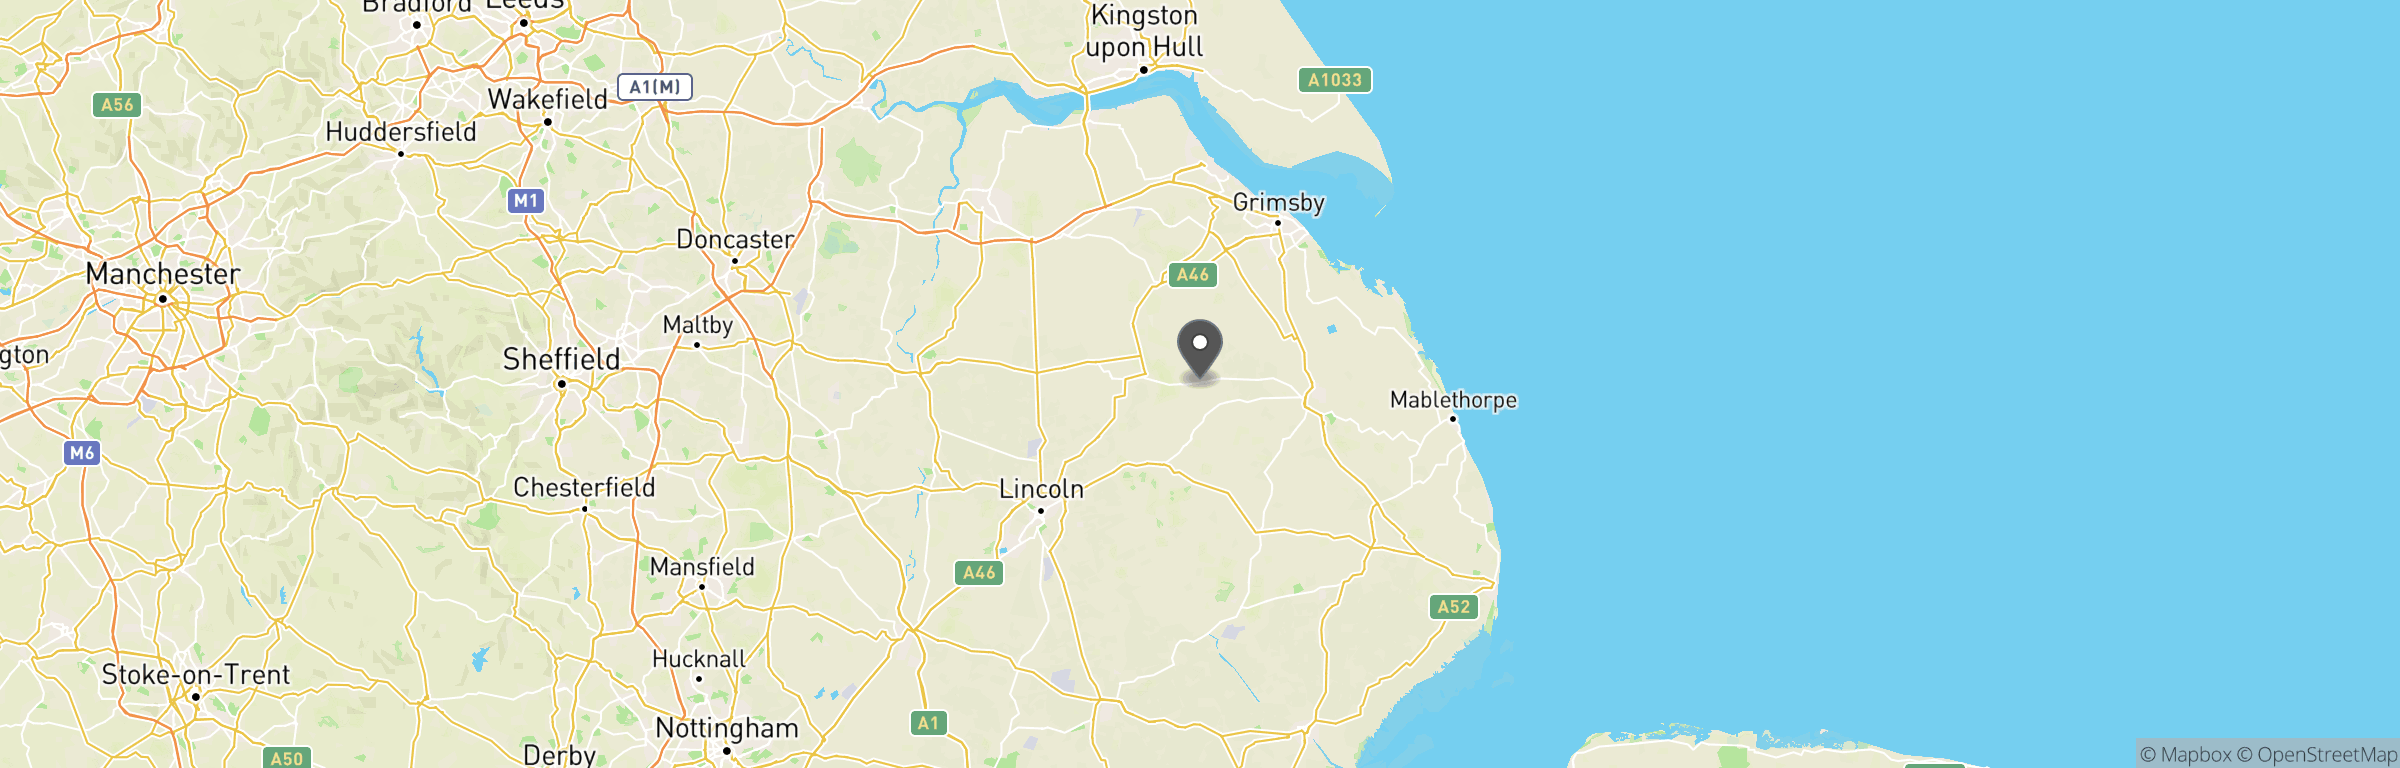 Location map of The Big One MK1